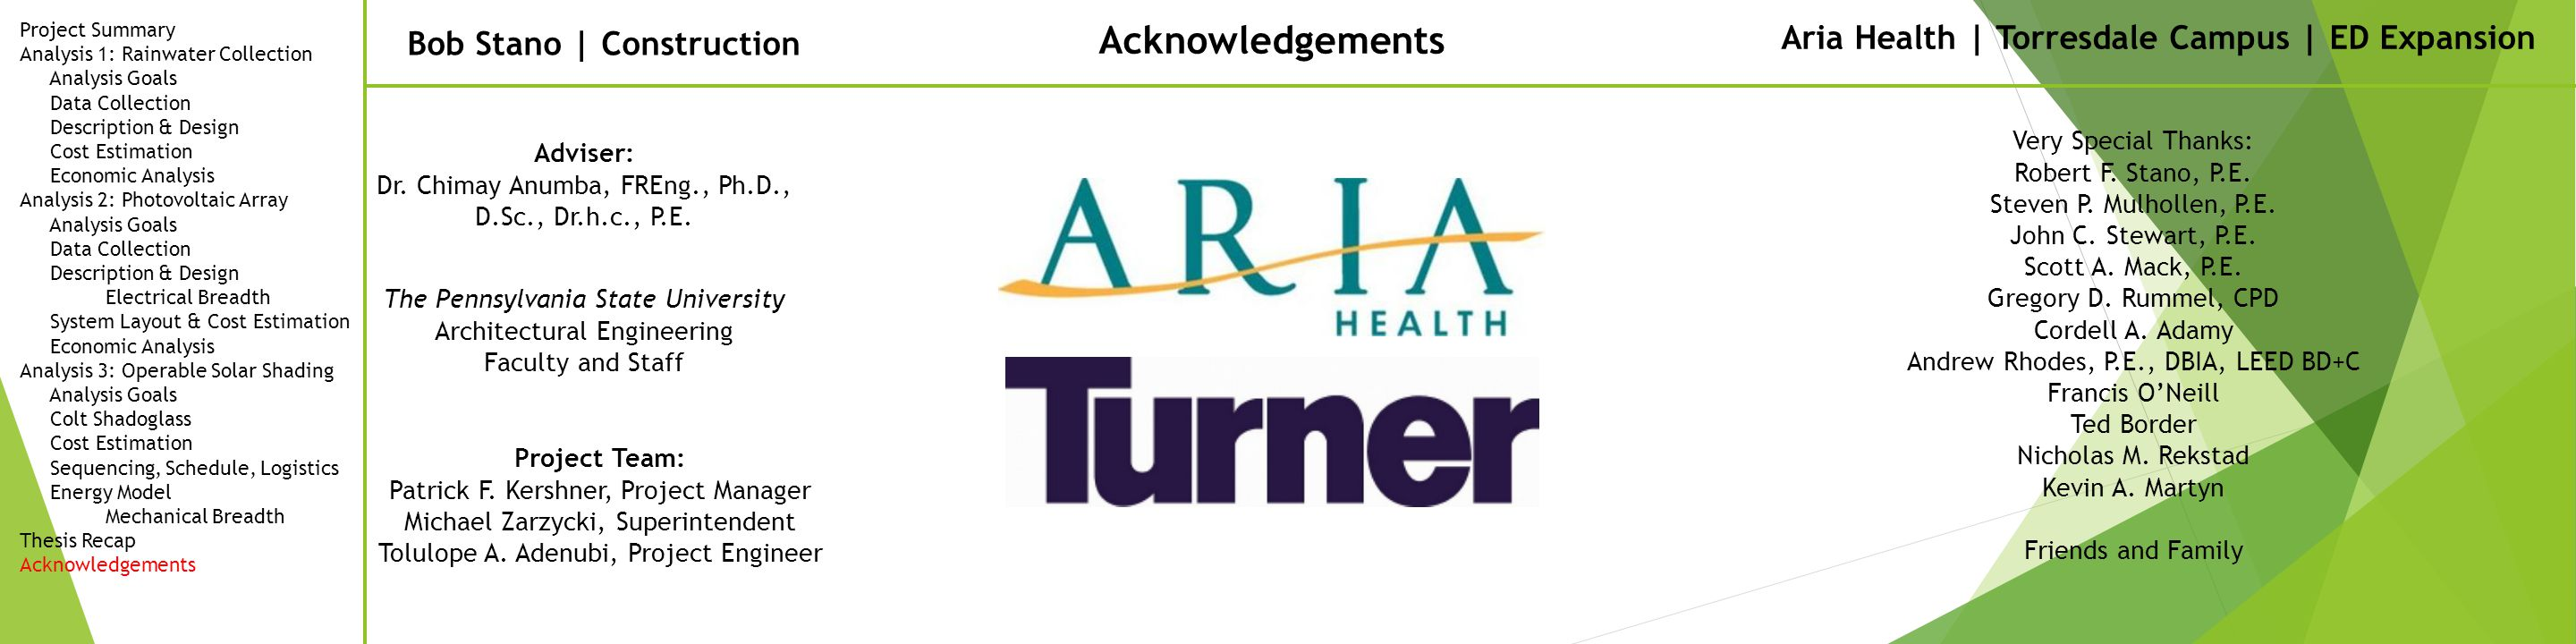 Bob Stano | Construction Aria Health | Torresdale Campus | ED Expansion Acknowledgements Adviser: Dr.